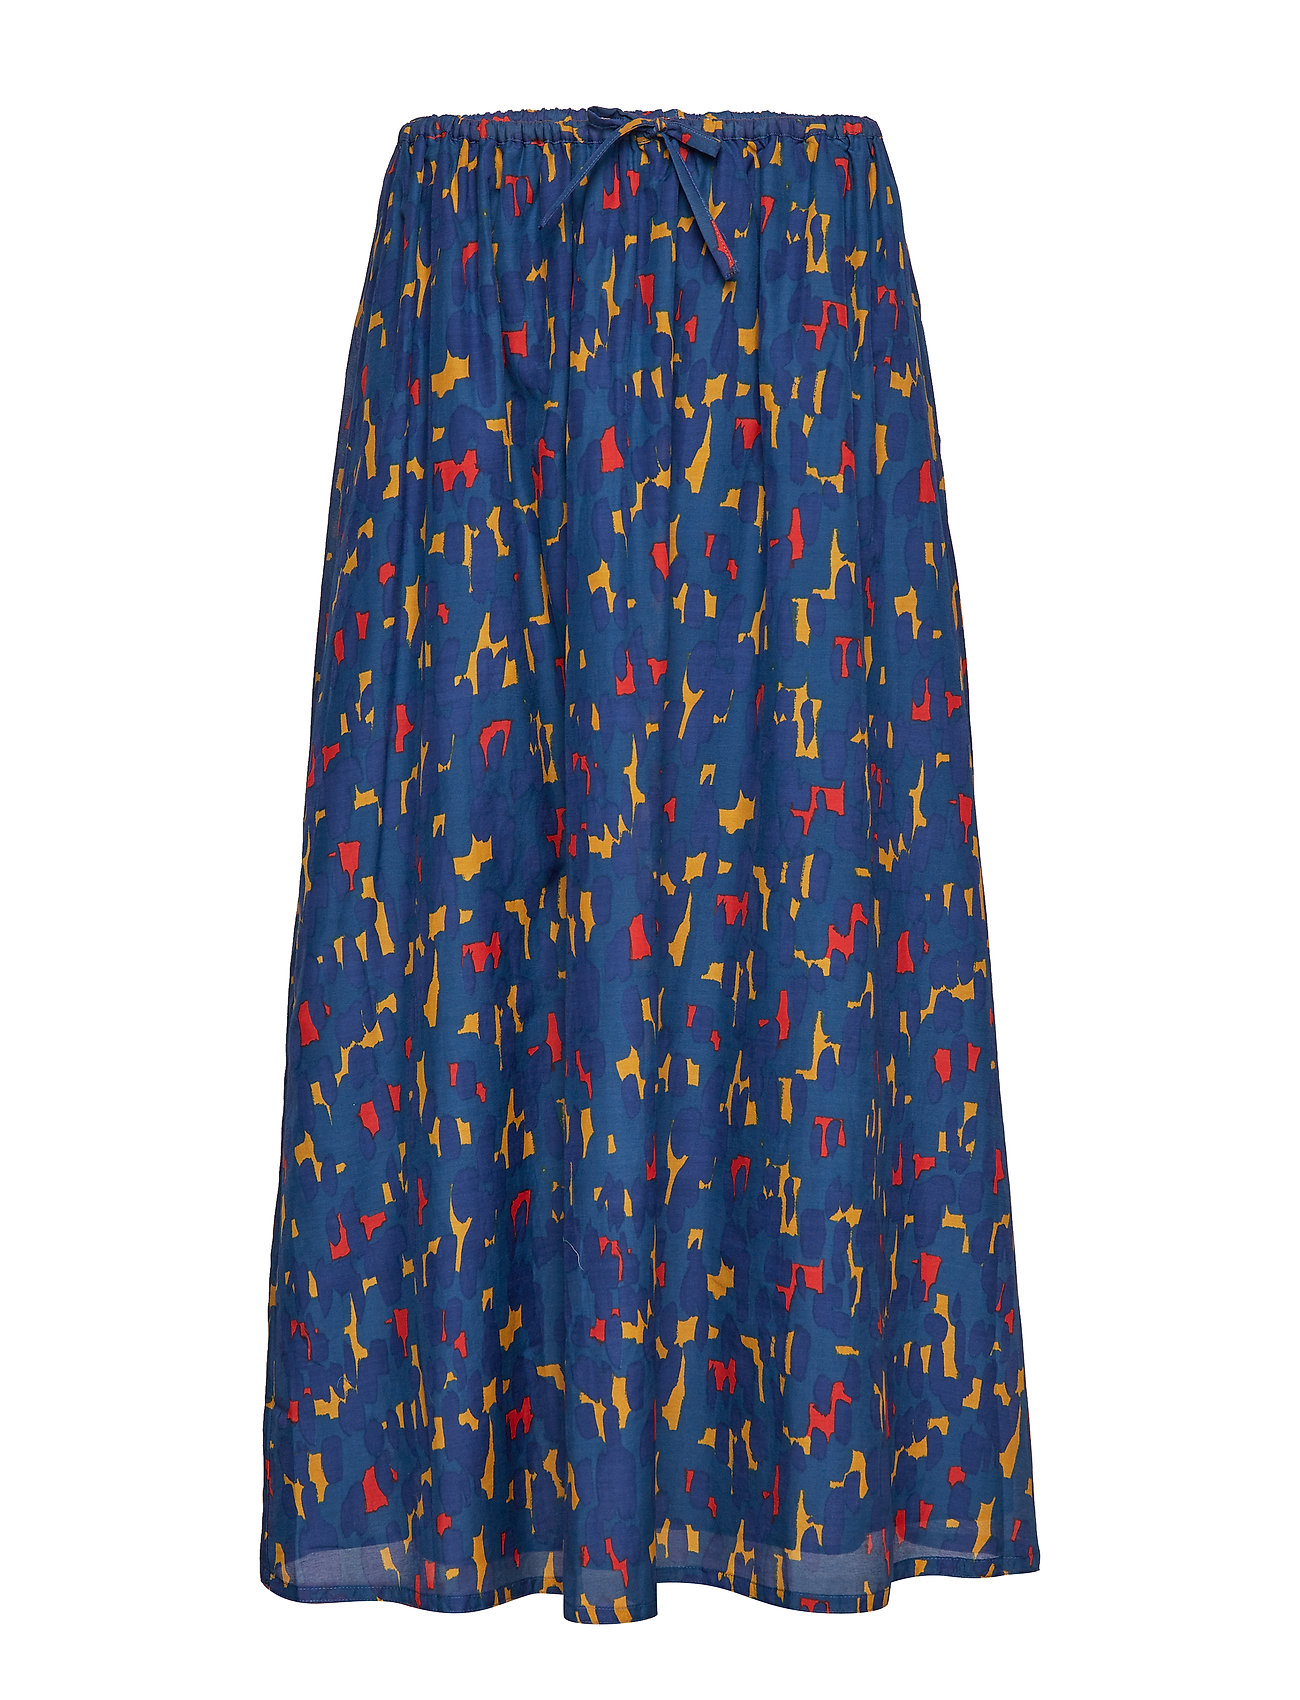 Marimekko HEHKU KASKI Skirt - DARK BLUE, RED, GOLD